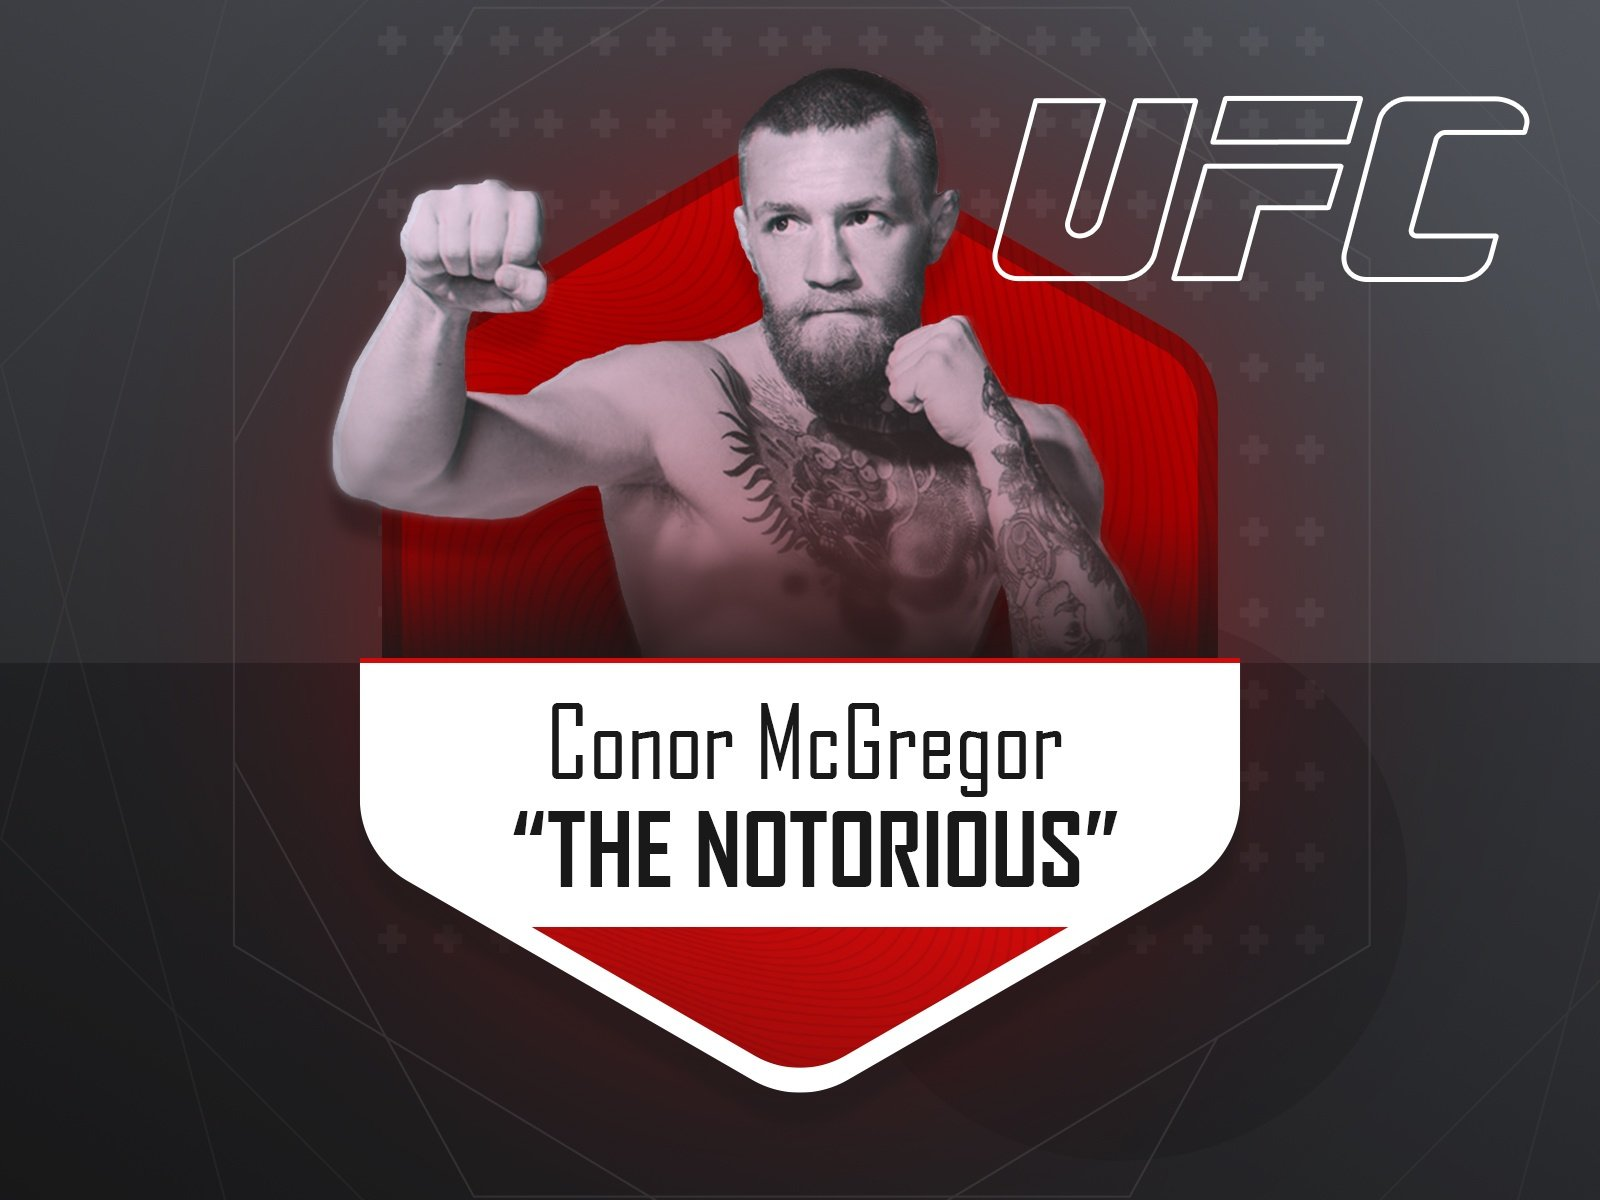 Conor McGregor - UFC fighter